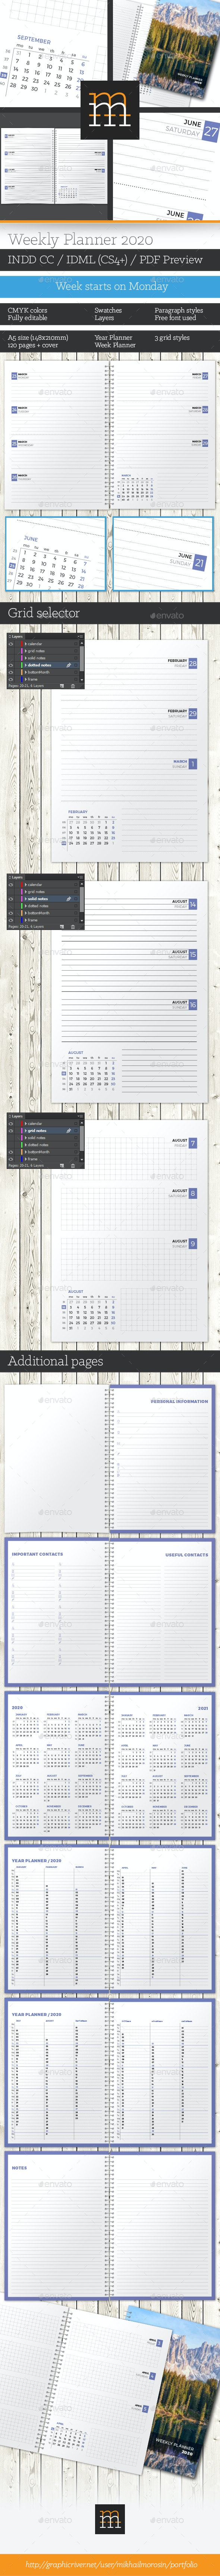 Weekly Planner 2020 - Calendars Stationery